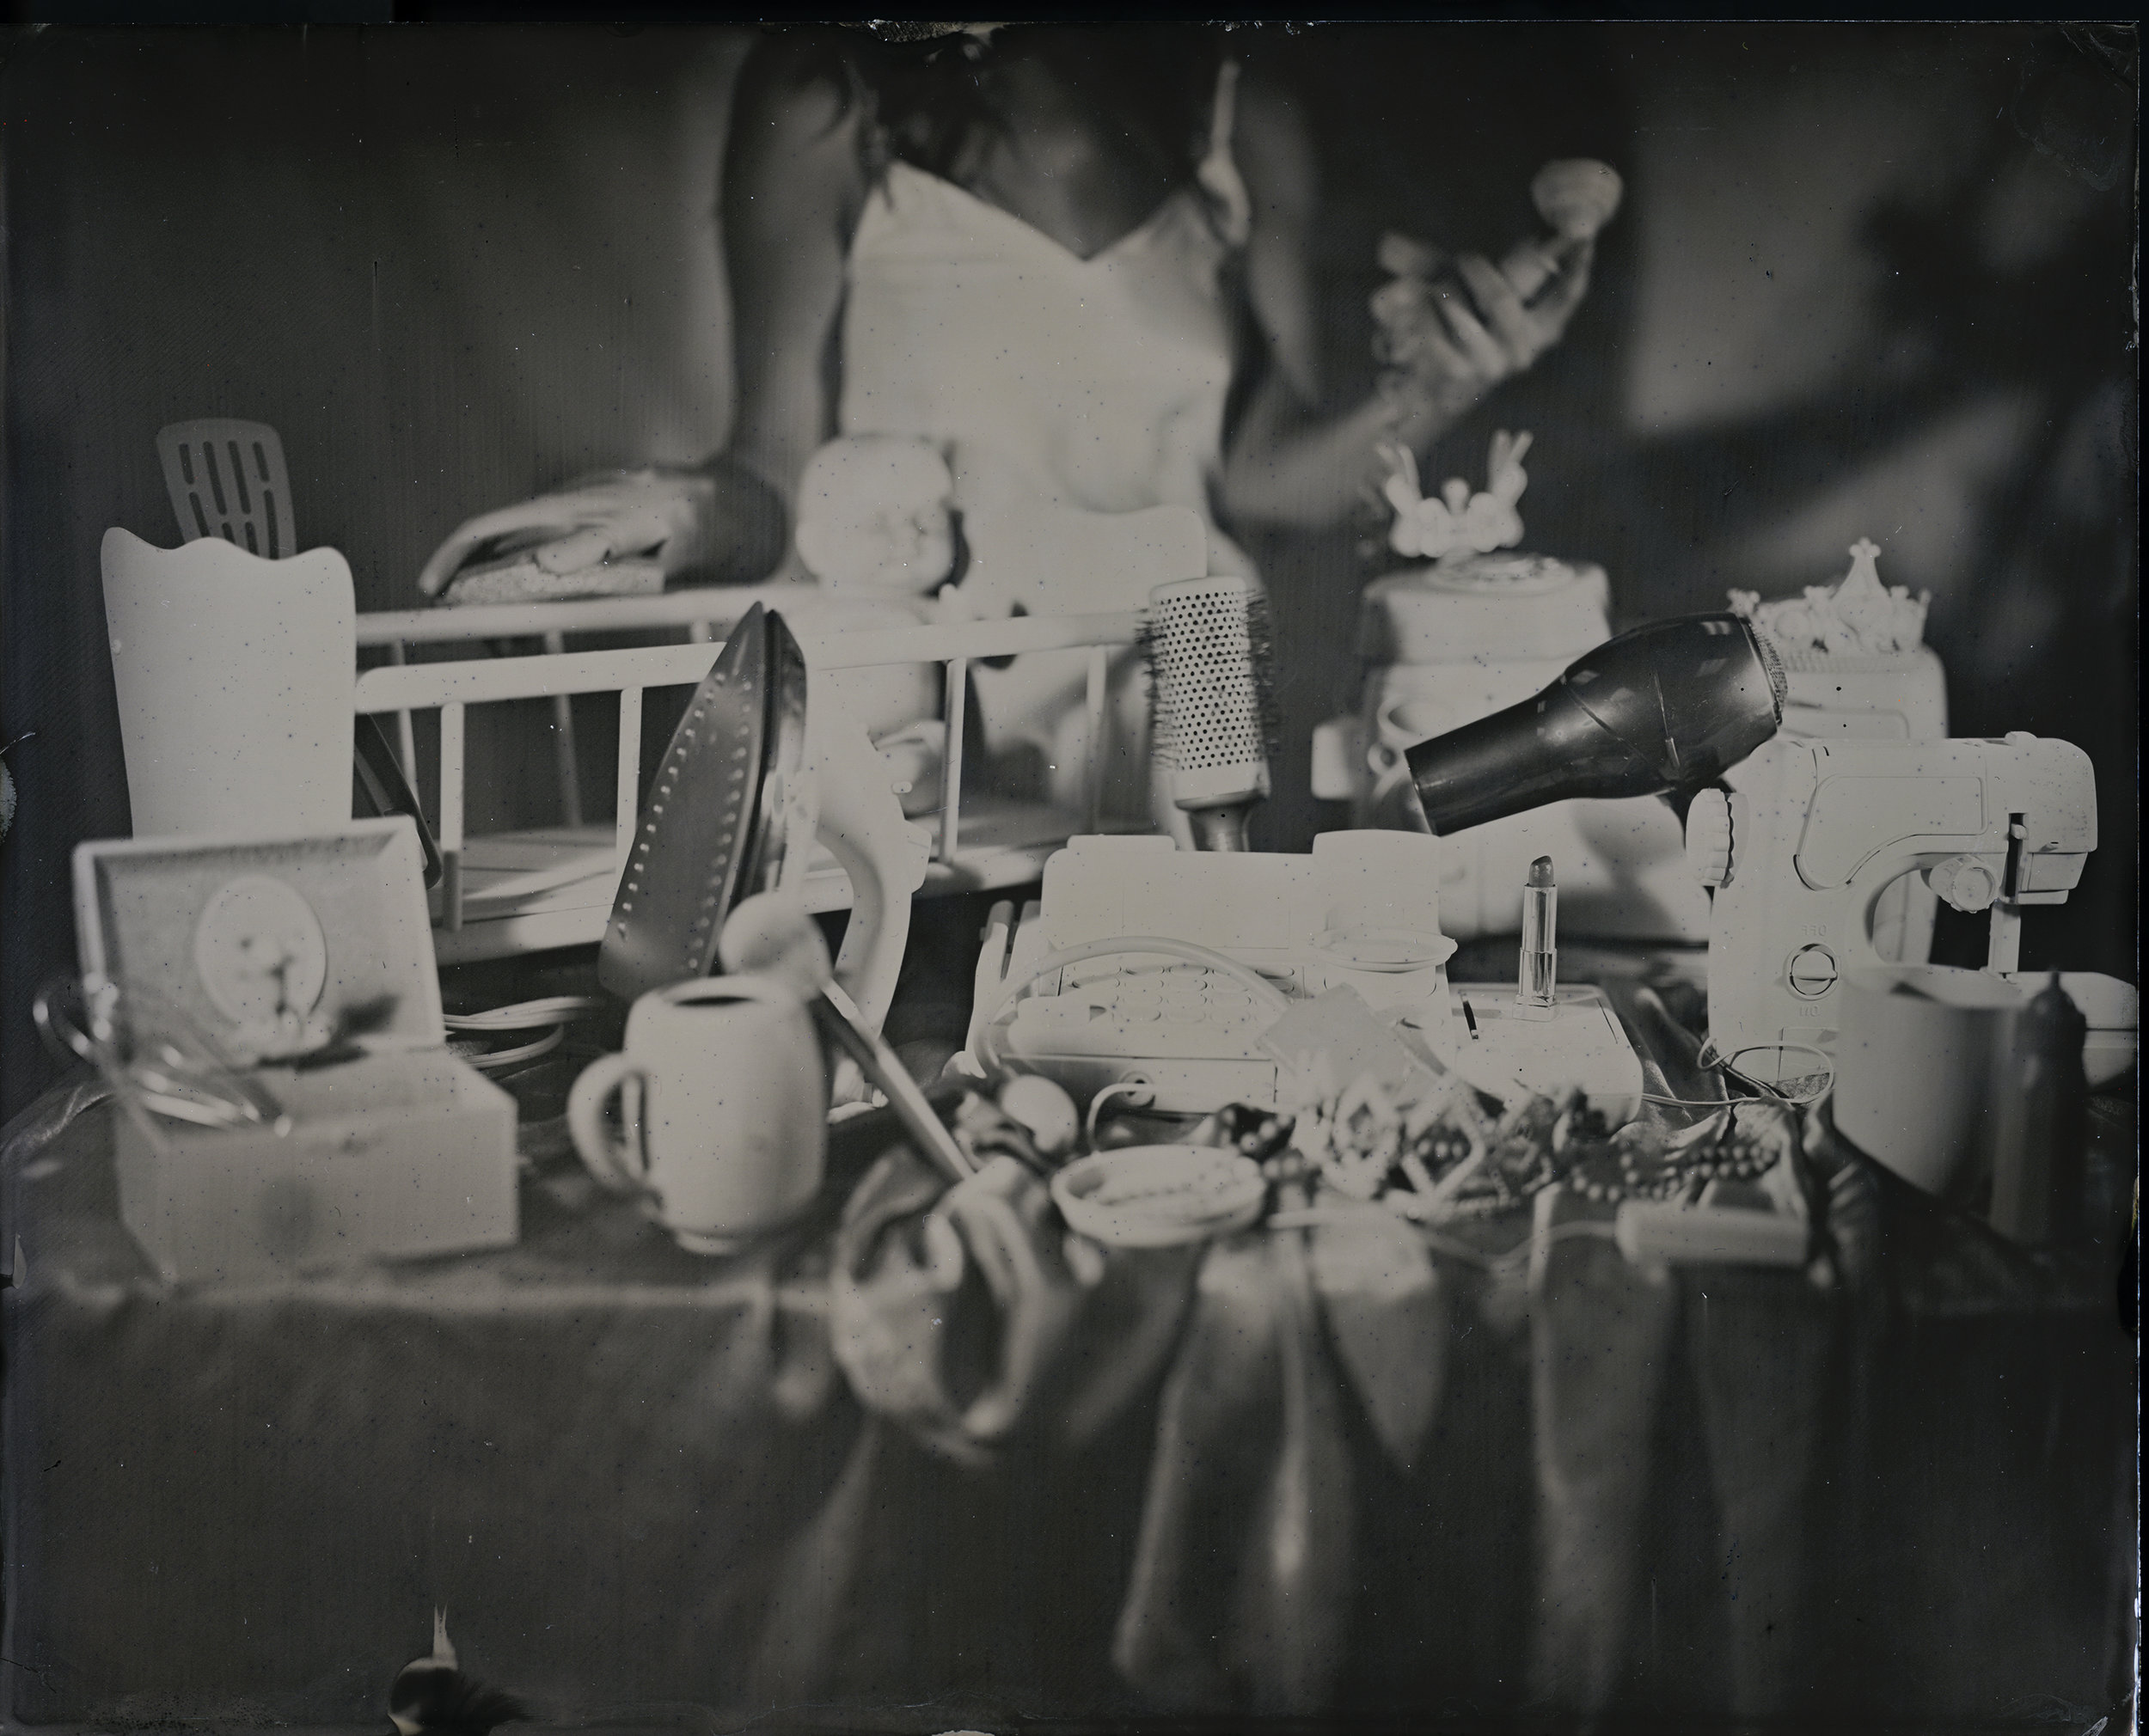 Still of Tiffany's objects